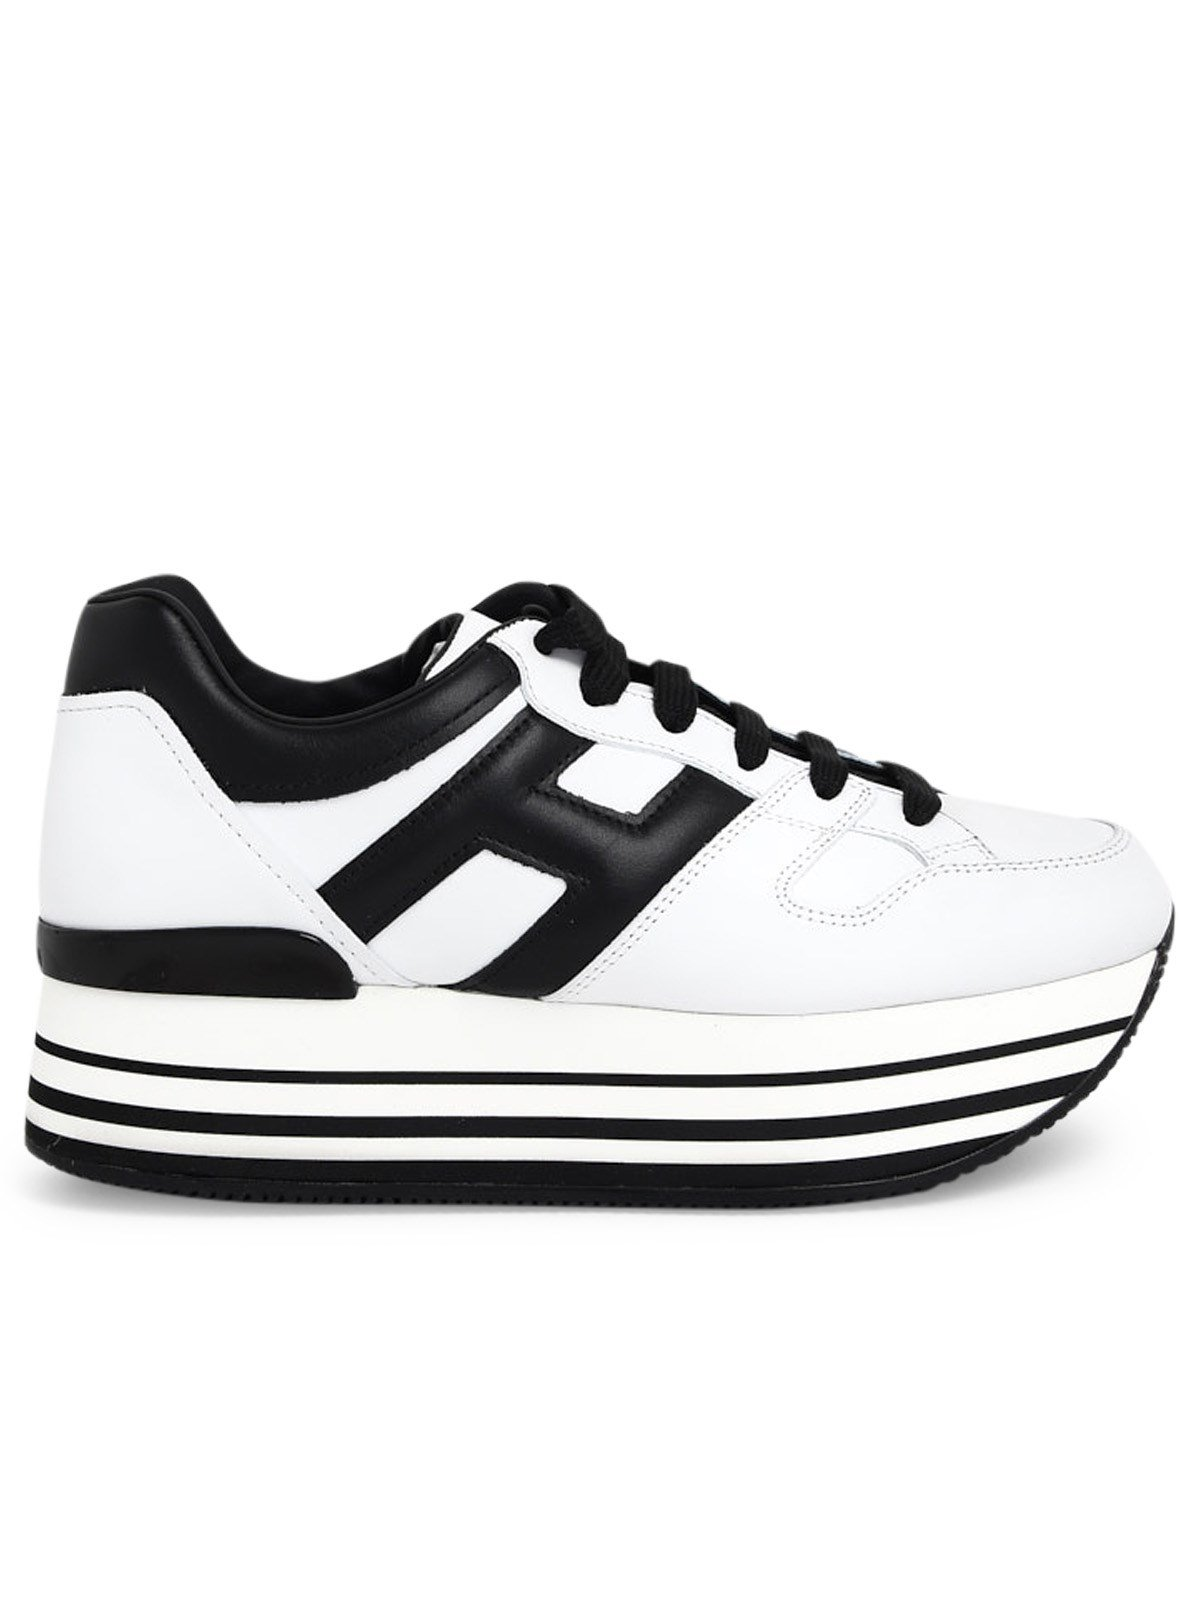 SNEAKERS H283 BIANCHE